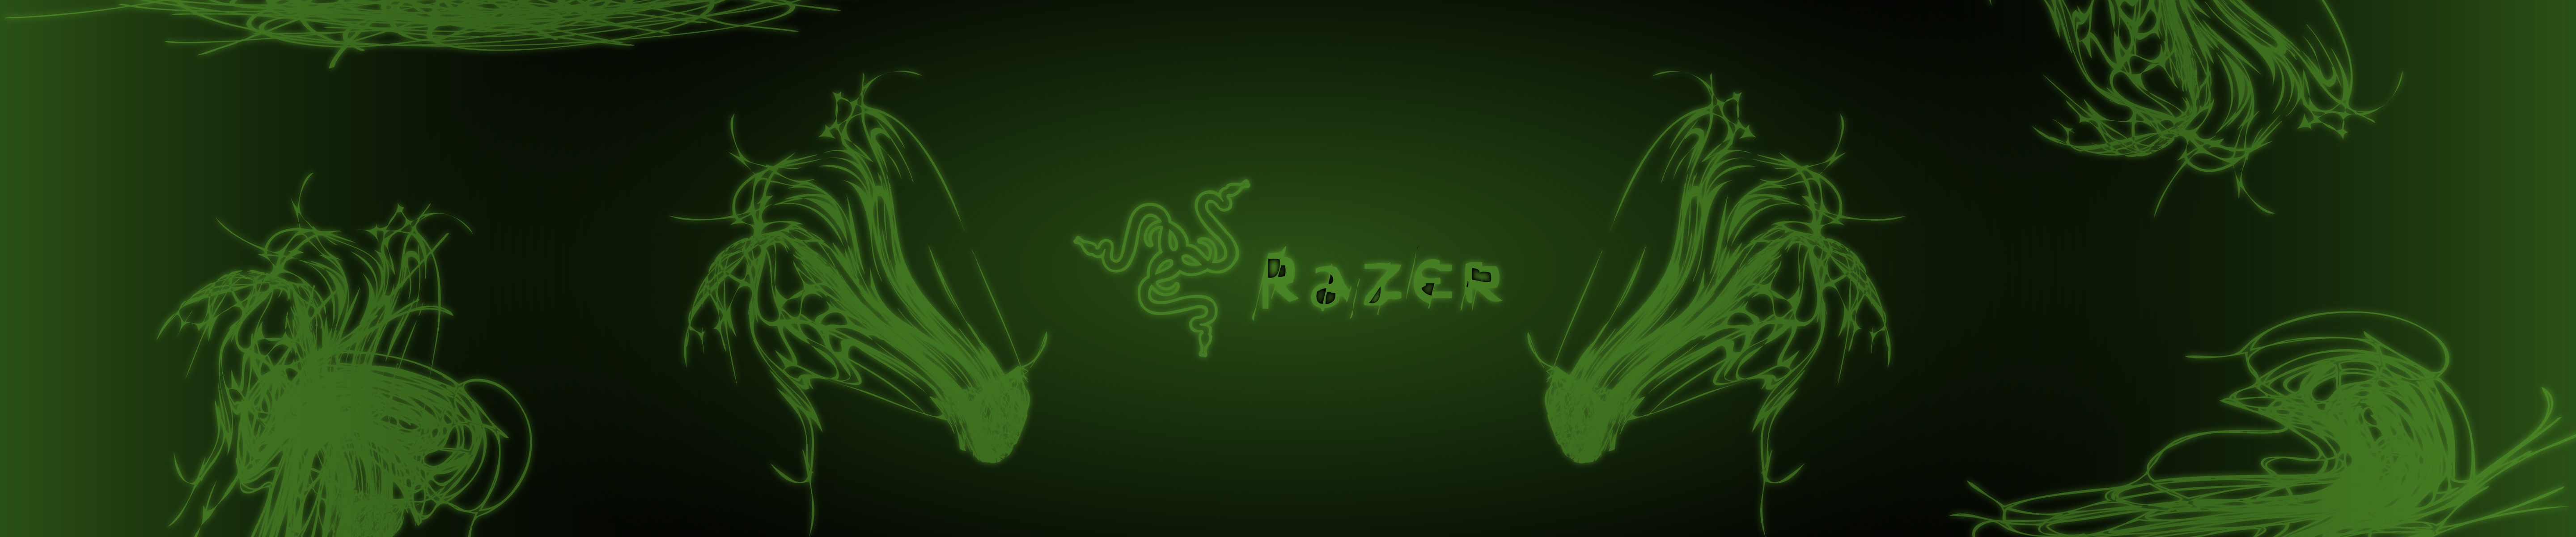 Razer Triple Screen Wallpaper PC Android IPhone And IPad Wallpapers 5760x1200